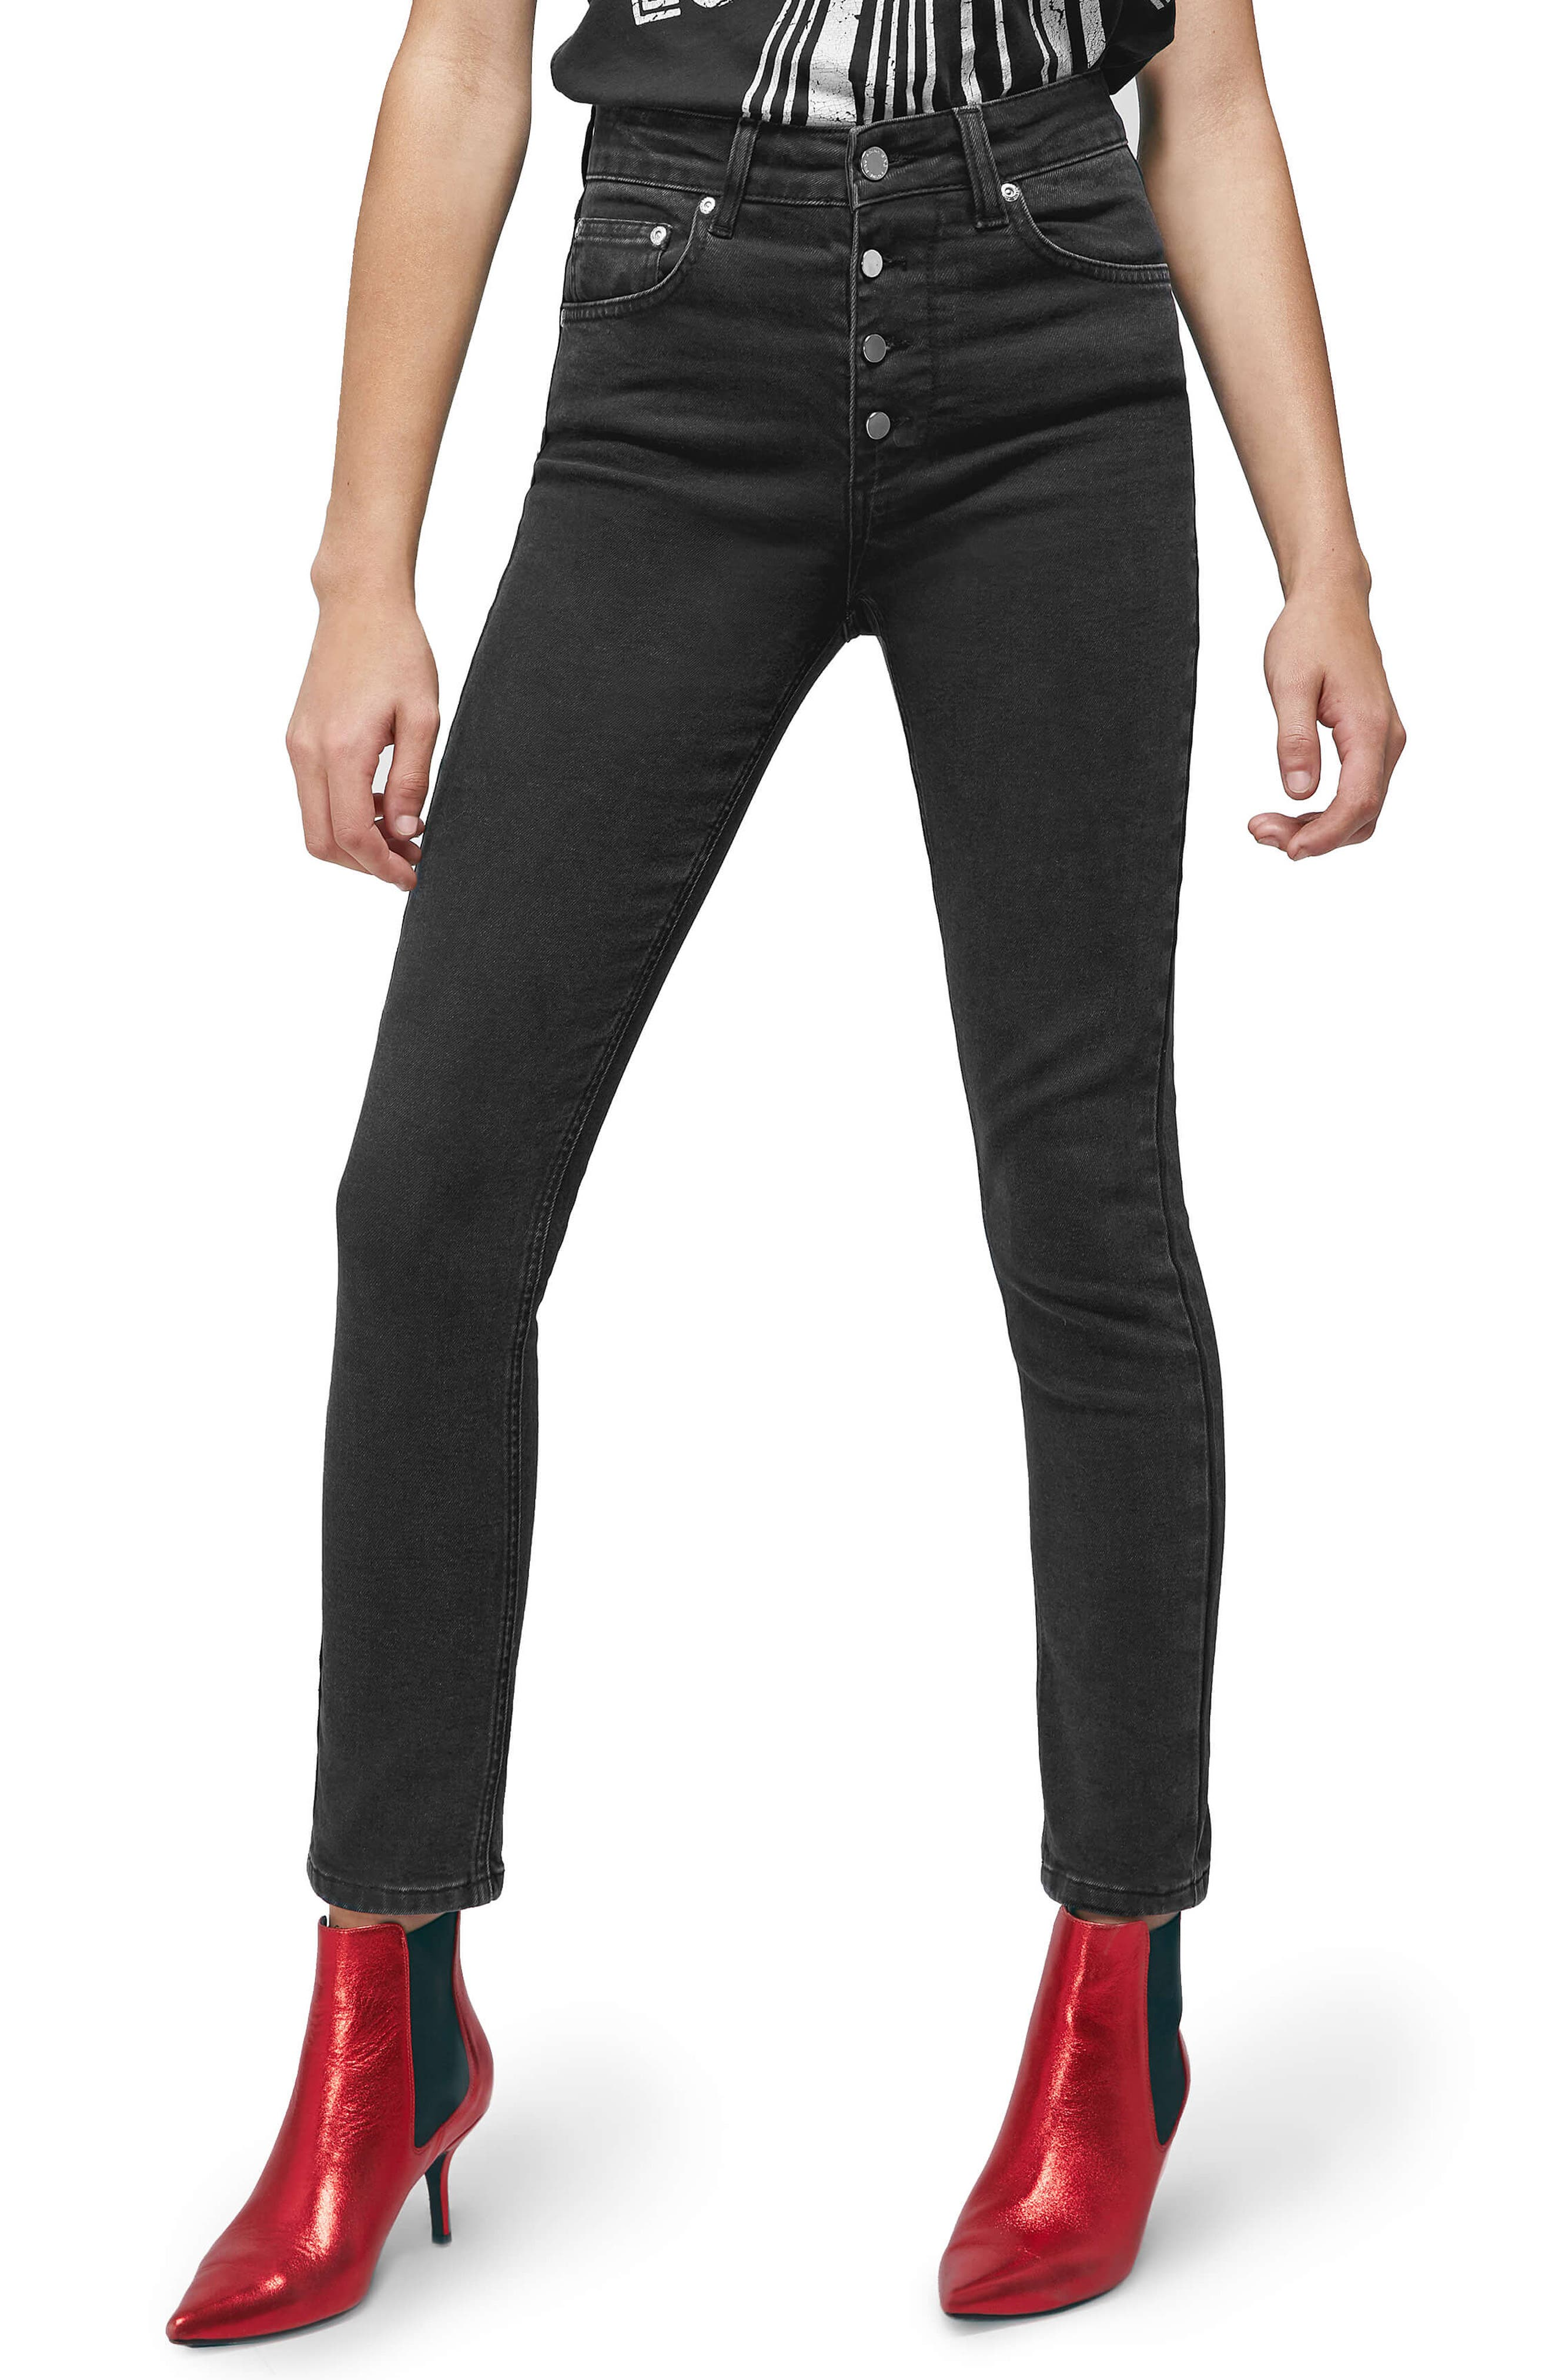 Anine Bing Jeans Frida Button Fly Skinny Jeans